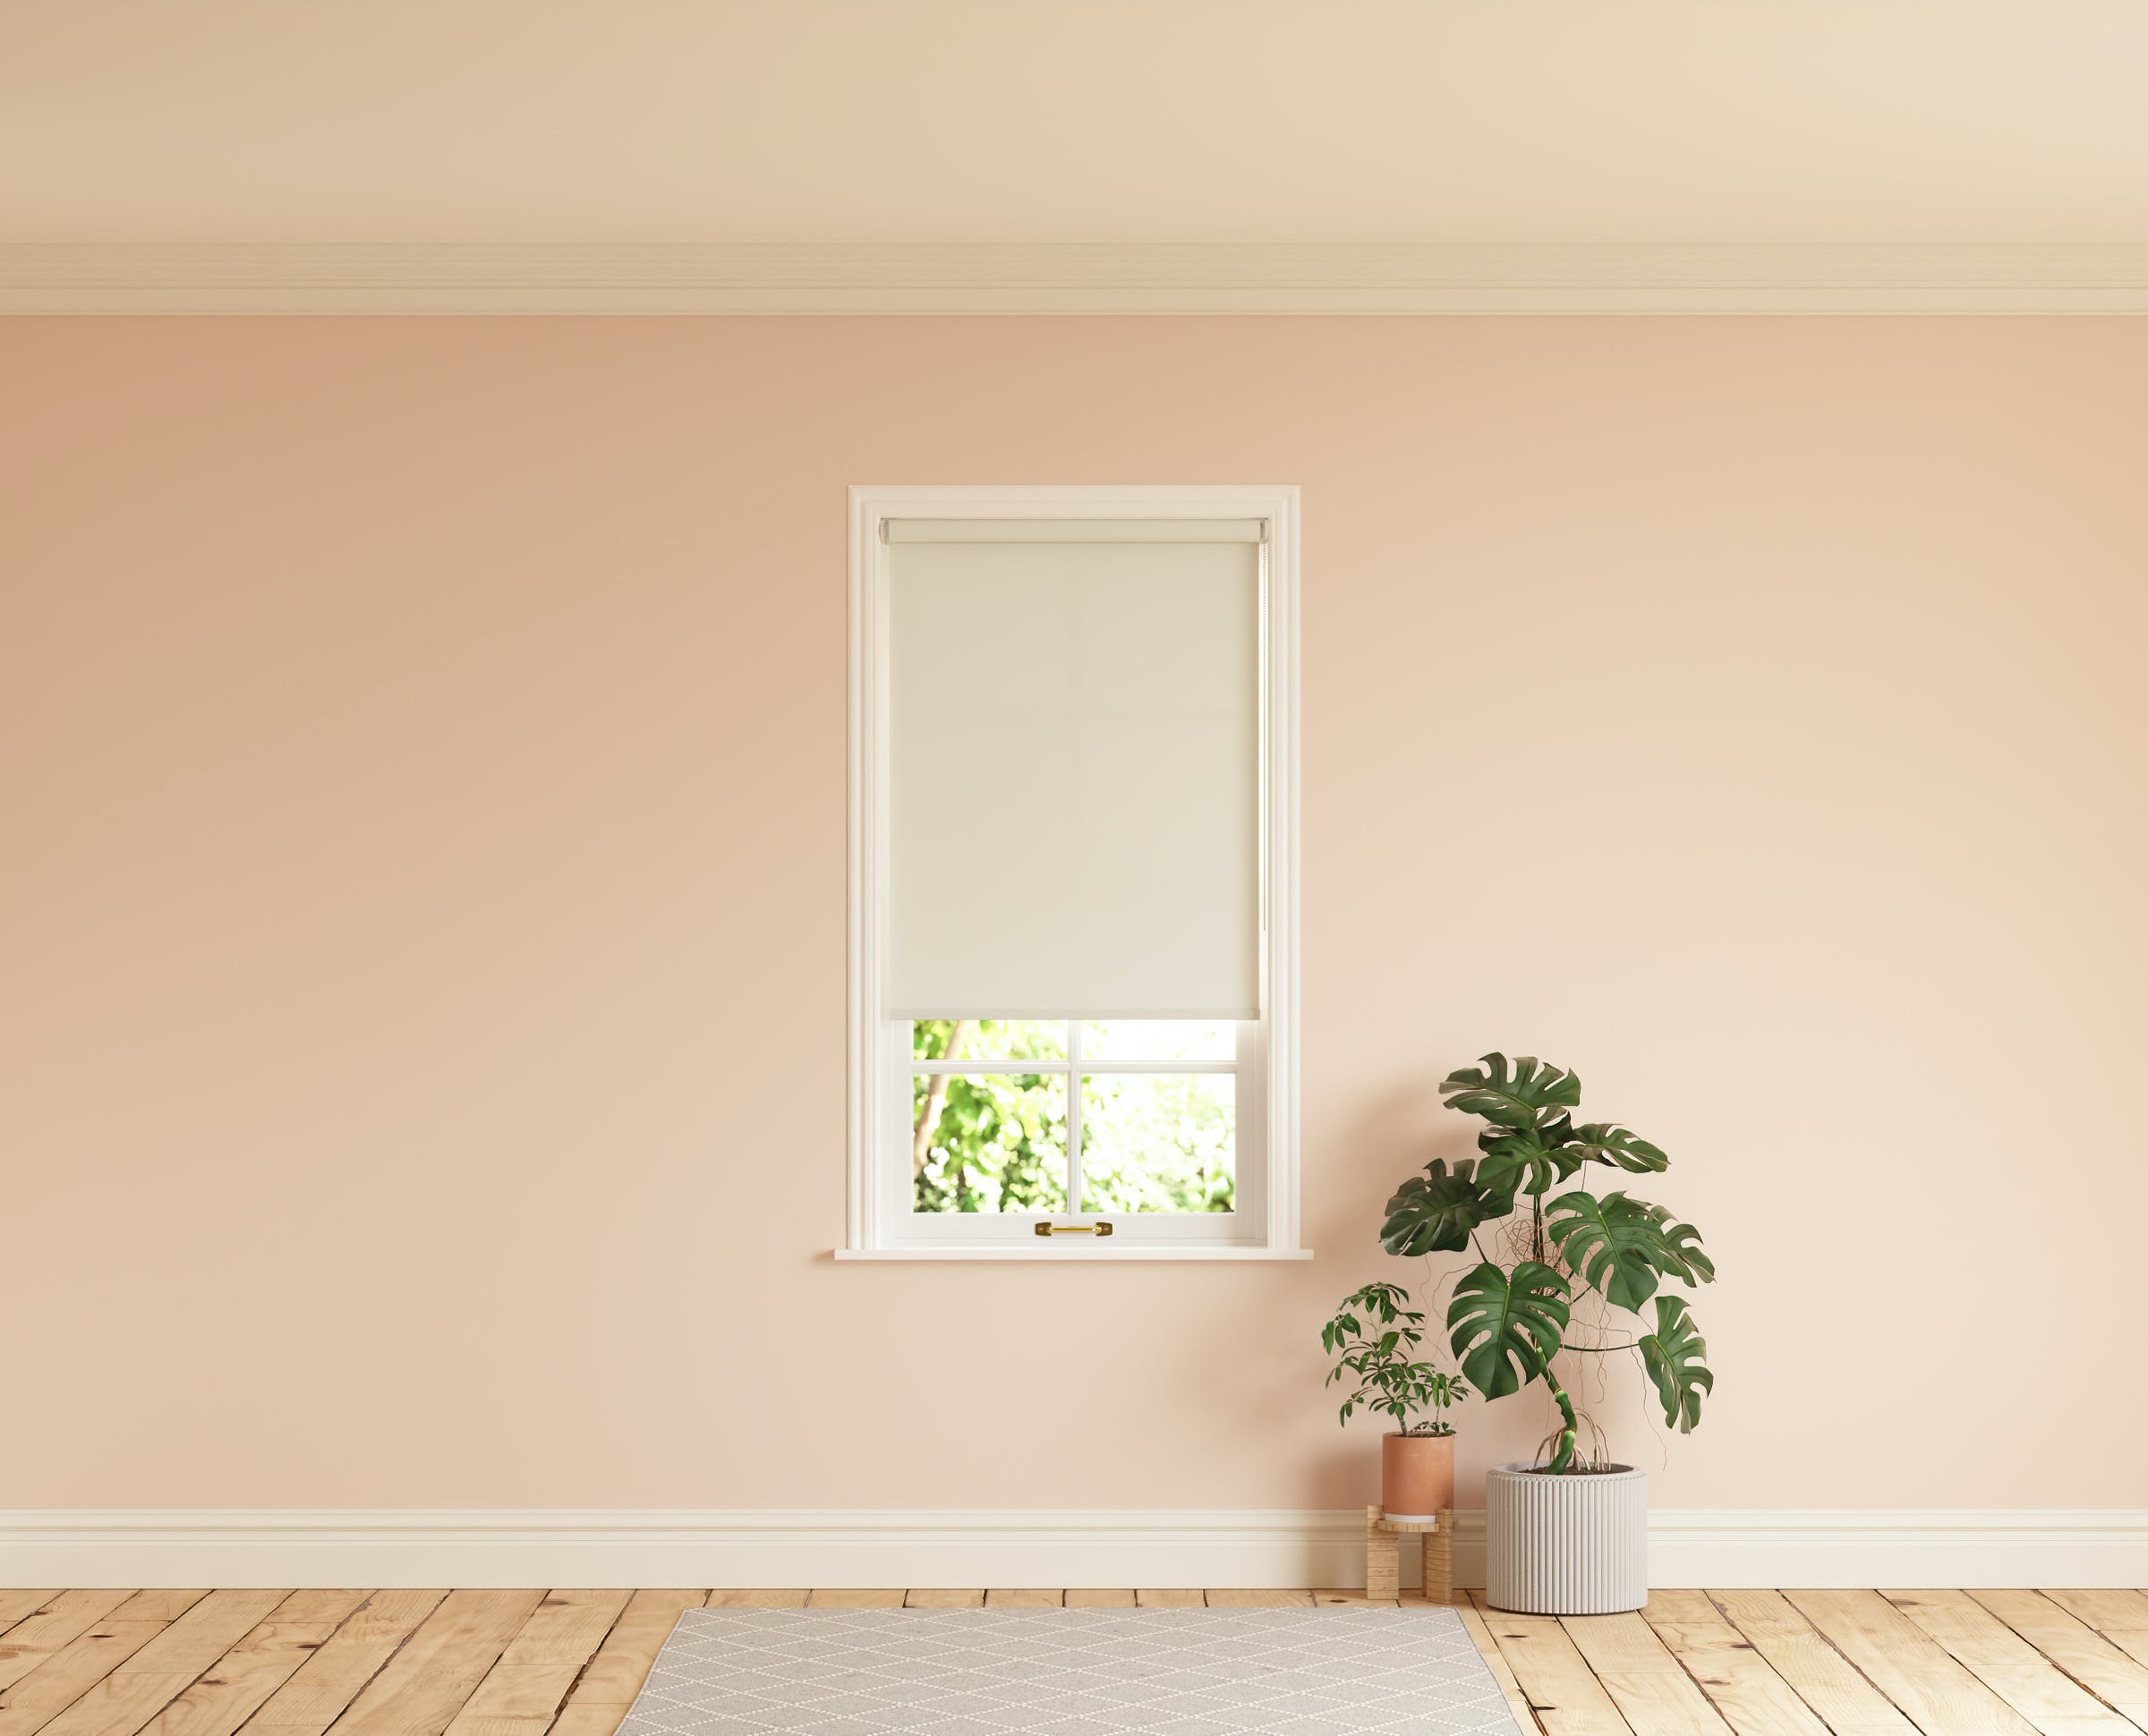 Room with walls painted in Lick Pink 02 and White 05 roller blinds